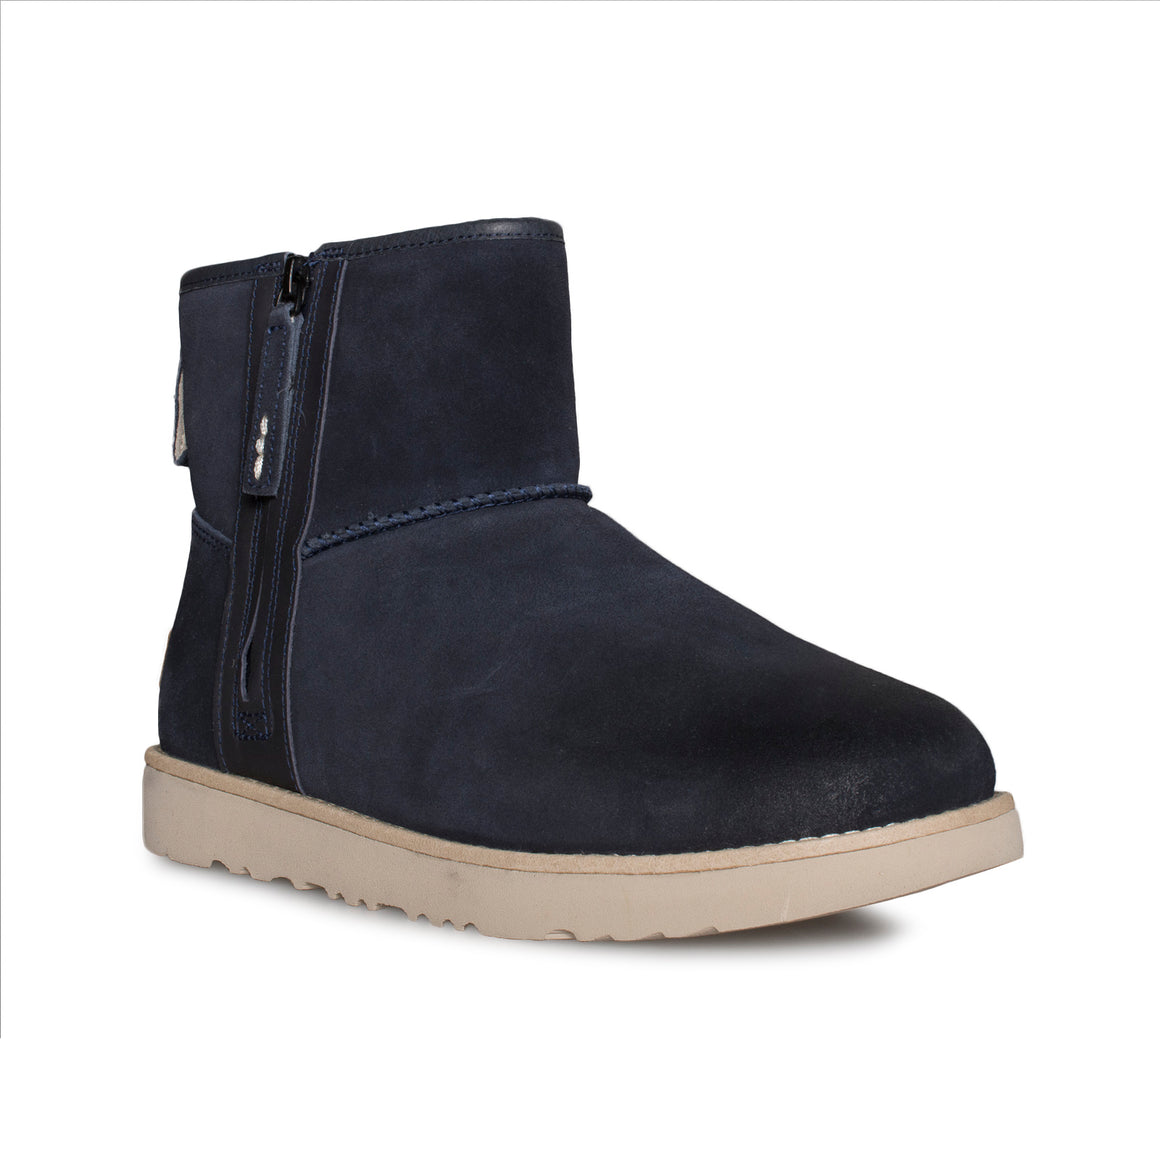 UGG Classic Mini Zip Waterproof True Navy Boots - Men's